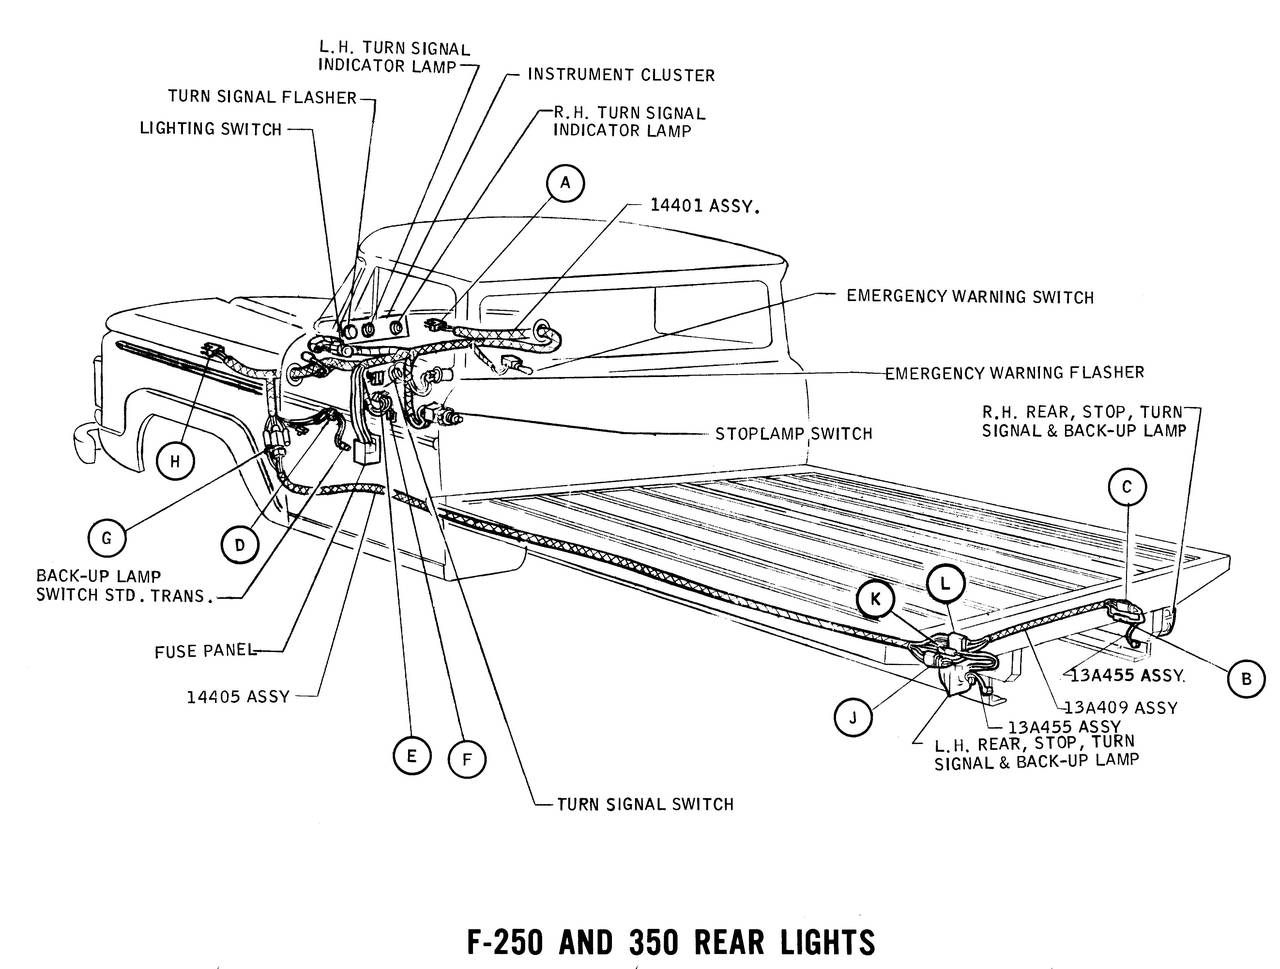 1965 Ford Truck Turn Signal Wiring Diagram - All Diagram ... Factory Ford Turn Signal Wiring Diagram on